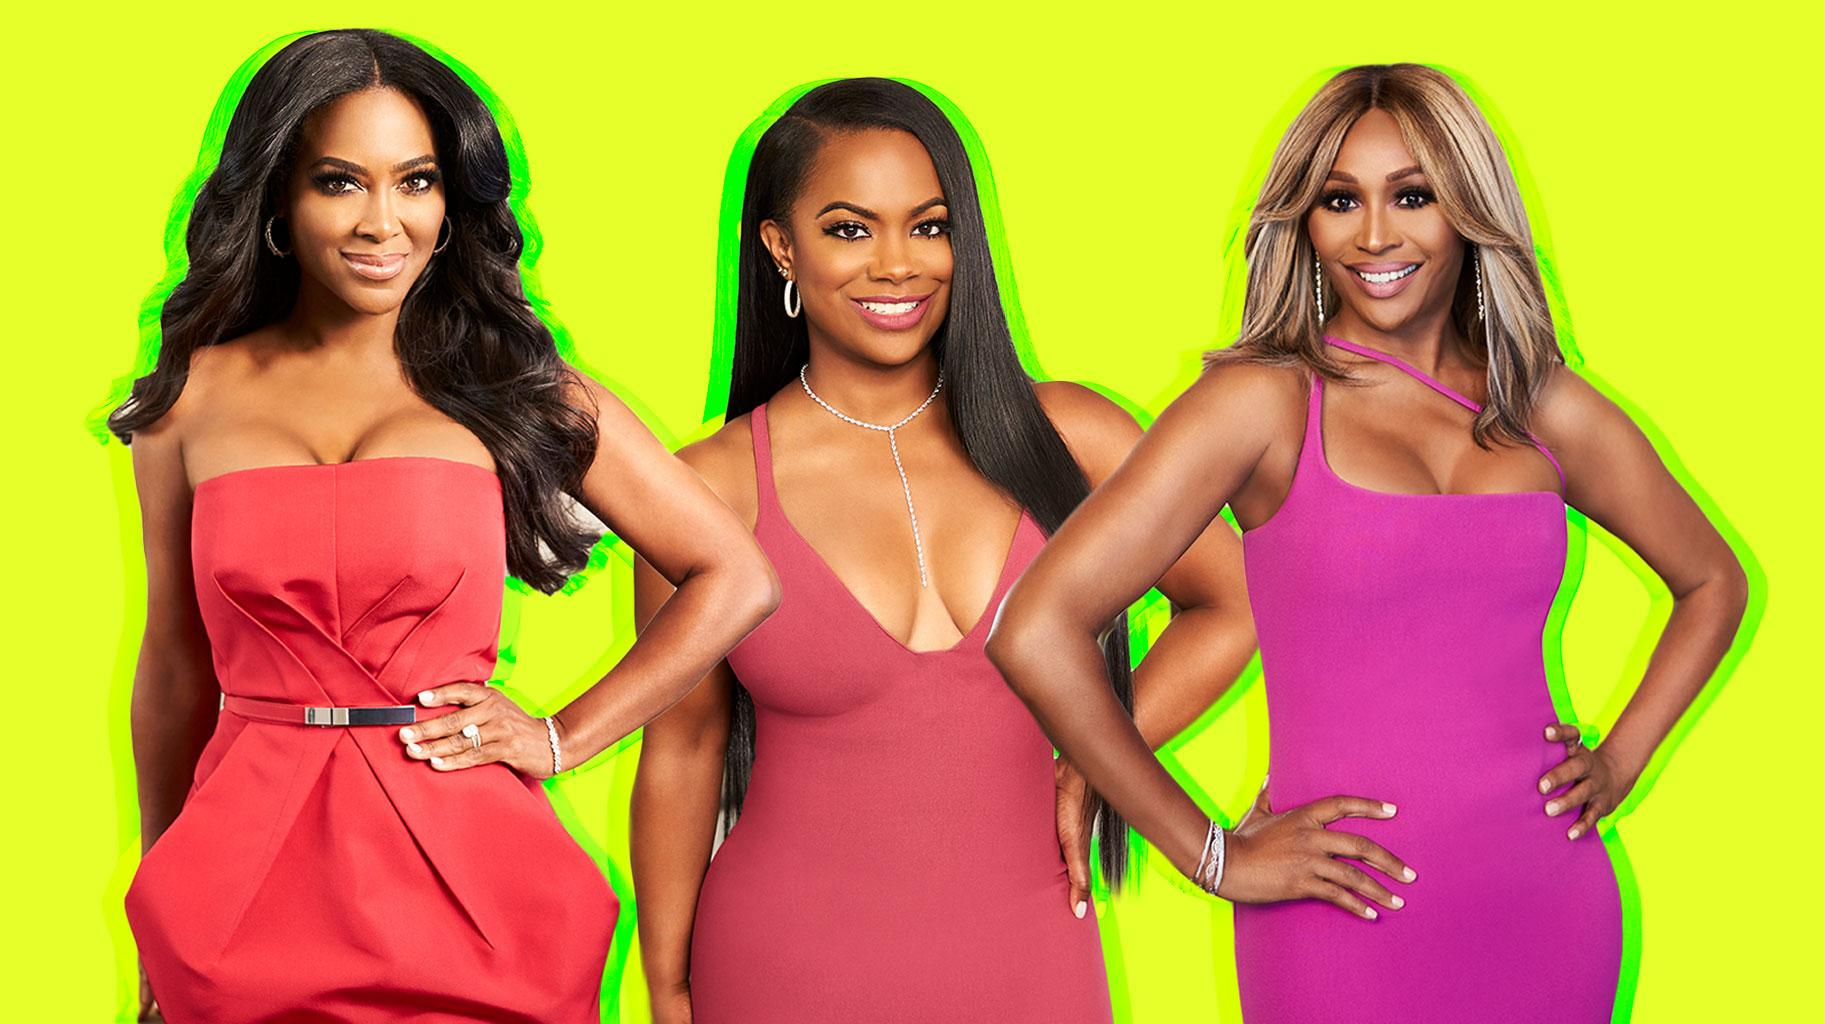 Kandi Burruss, Kenya Moore, Cynthia Bailey And Their Men Have A Night Out And People Praise Their Friendship